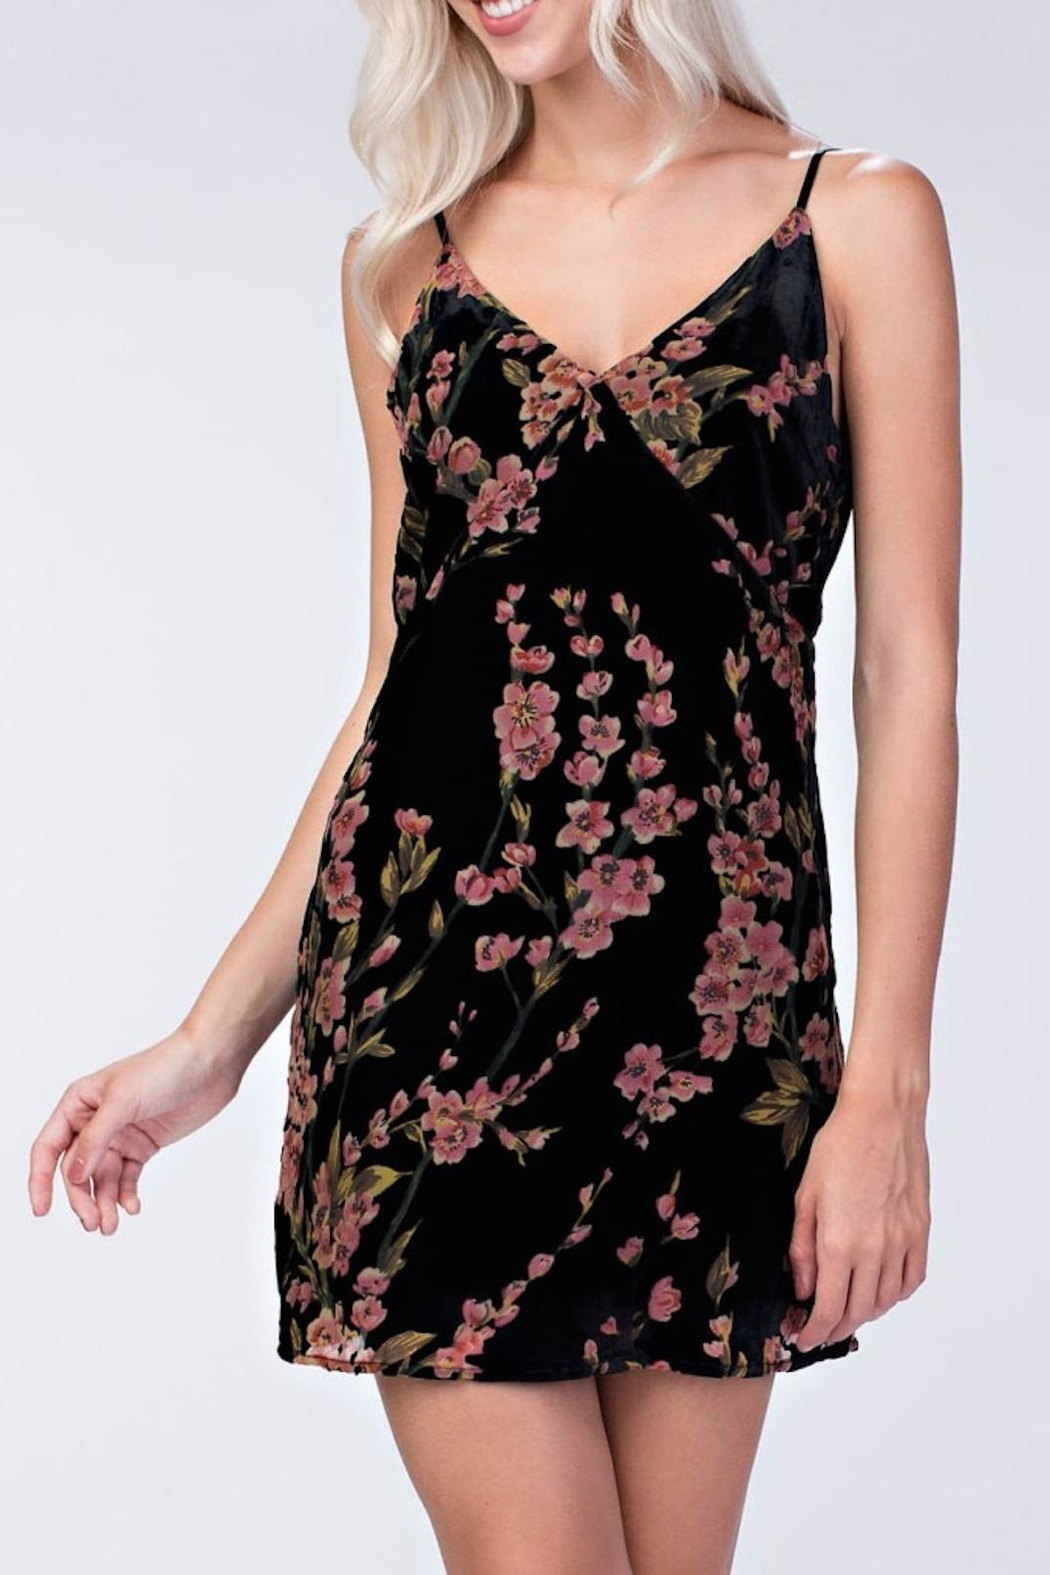 honeybelle Velvet Floral Dress - Main Image